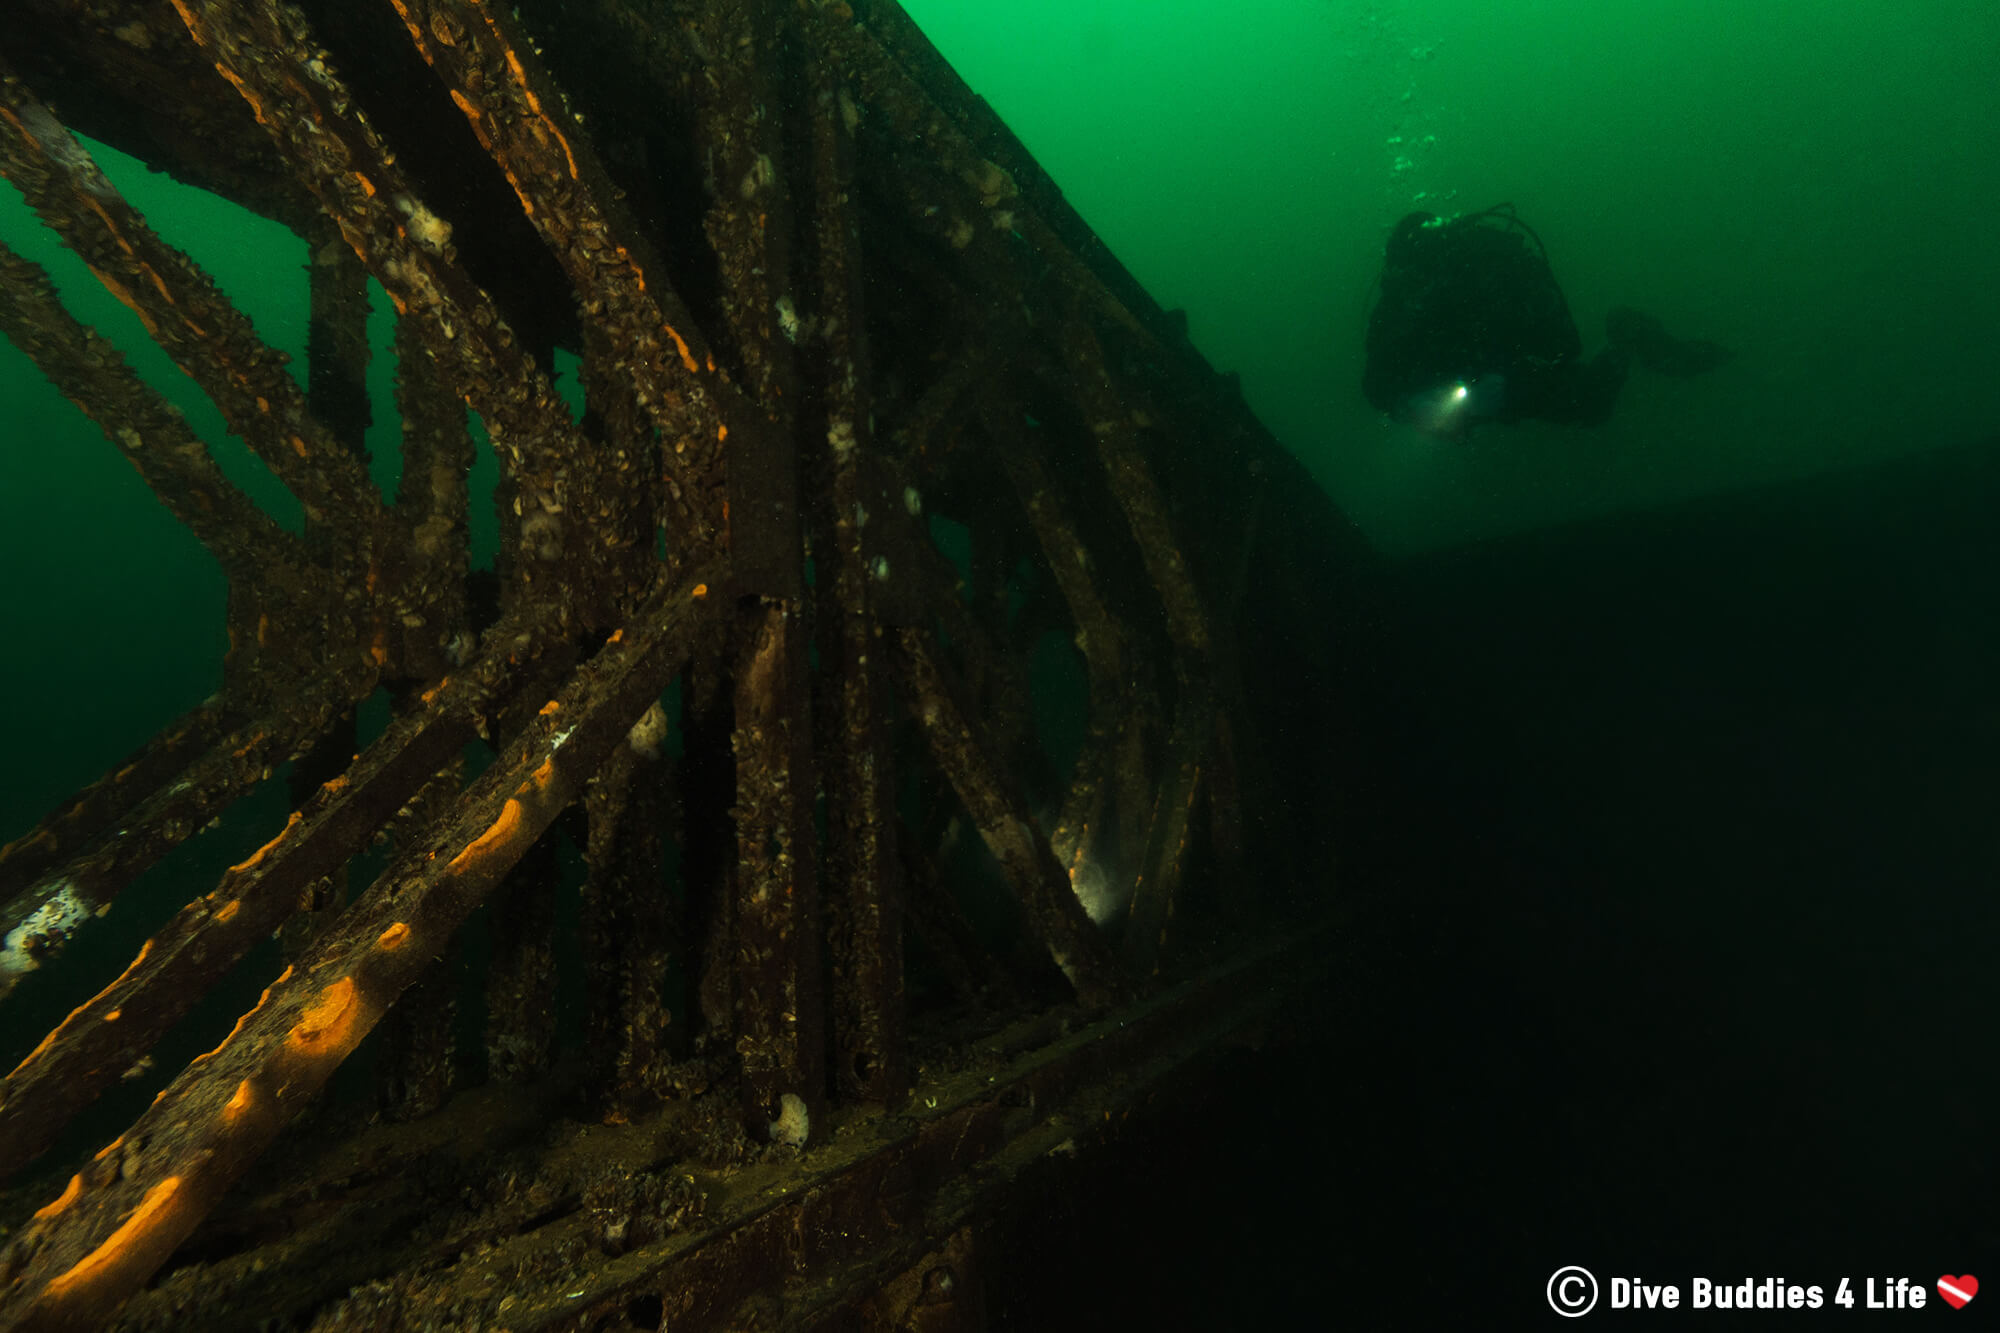 A Scuba Diver Silhouette In The Submerged Crushing Works Of Vobster Quay, England, United Kingdom